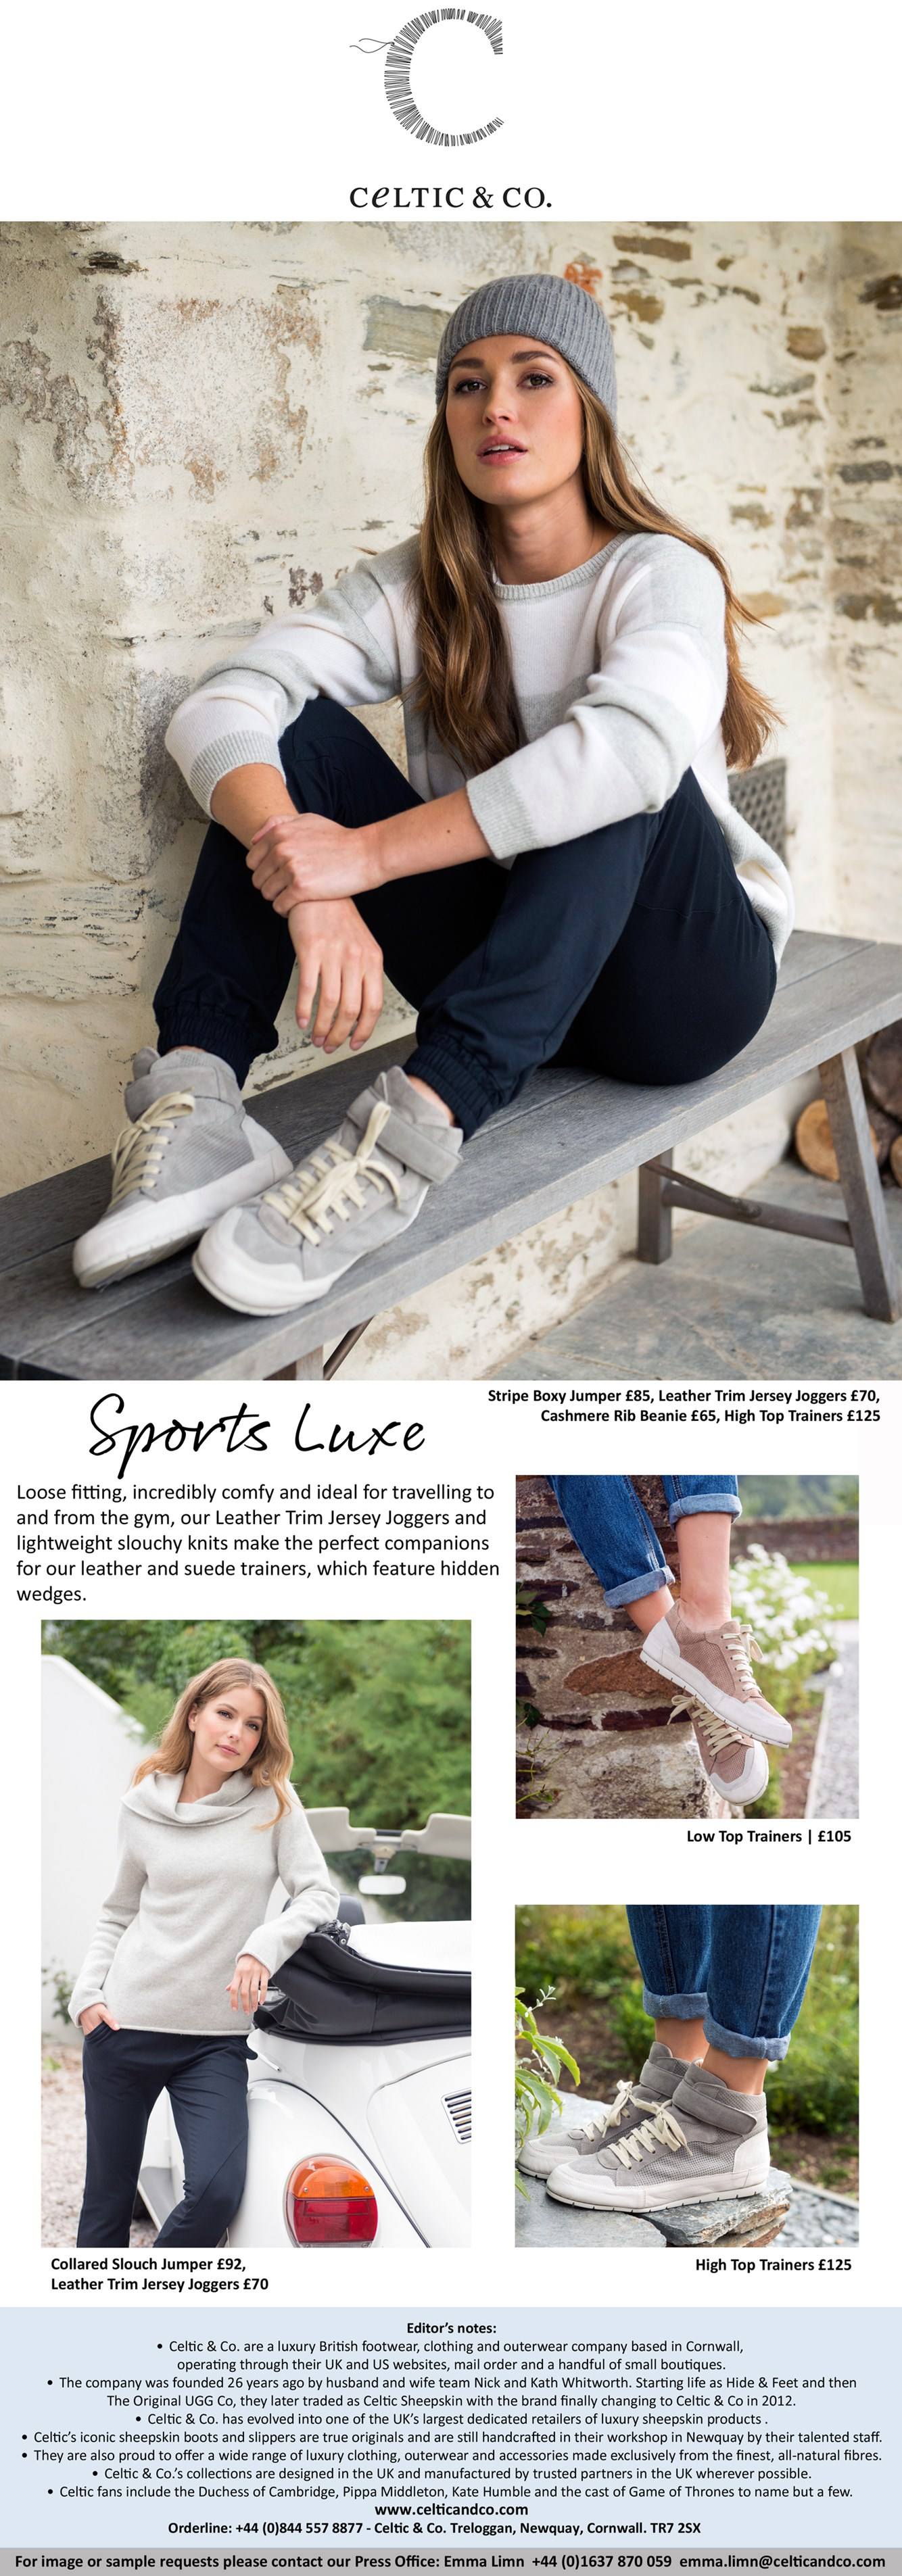 sports luxe - celtic and co.jpg